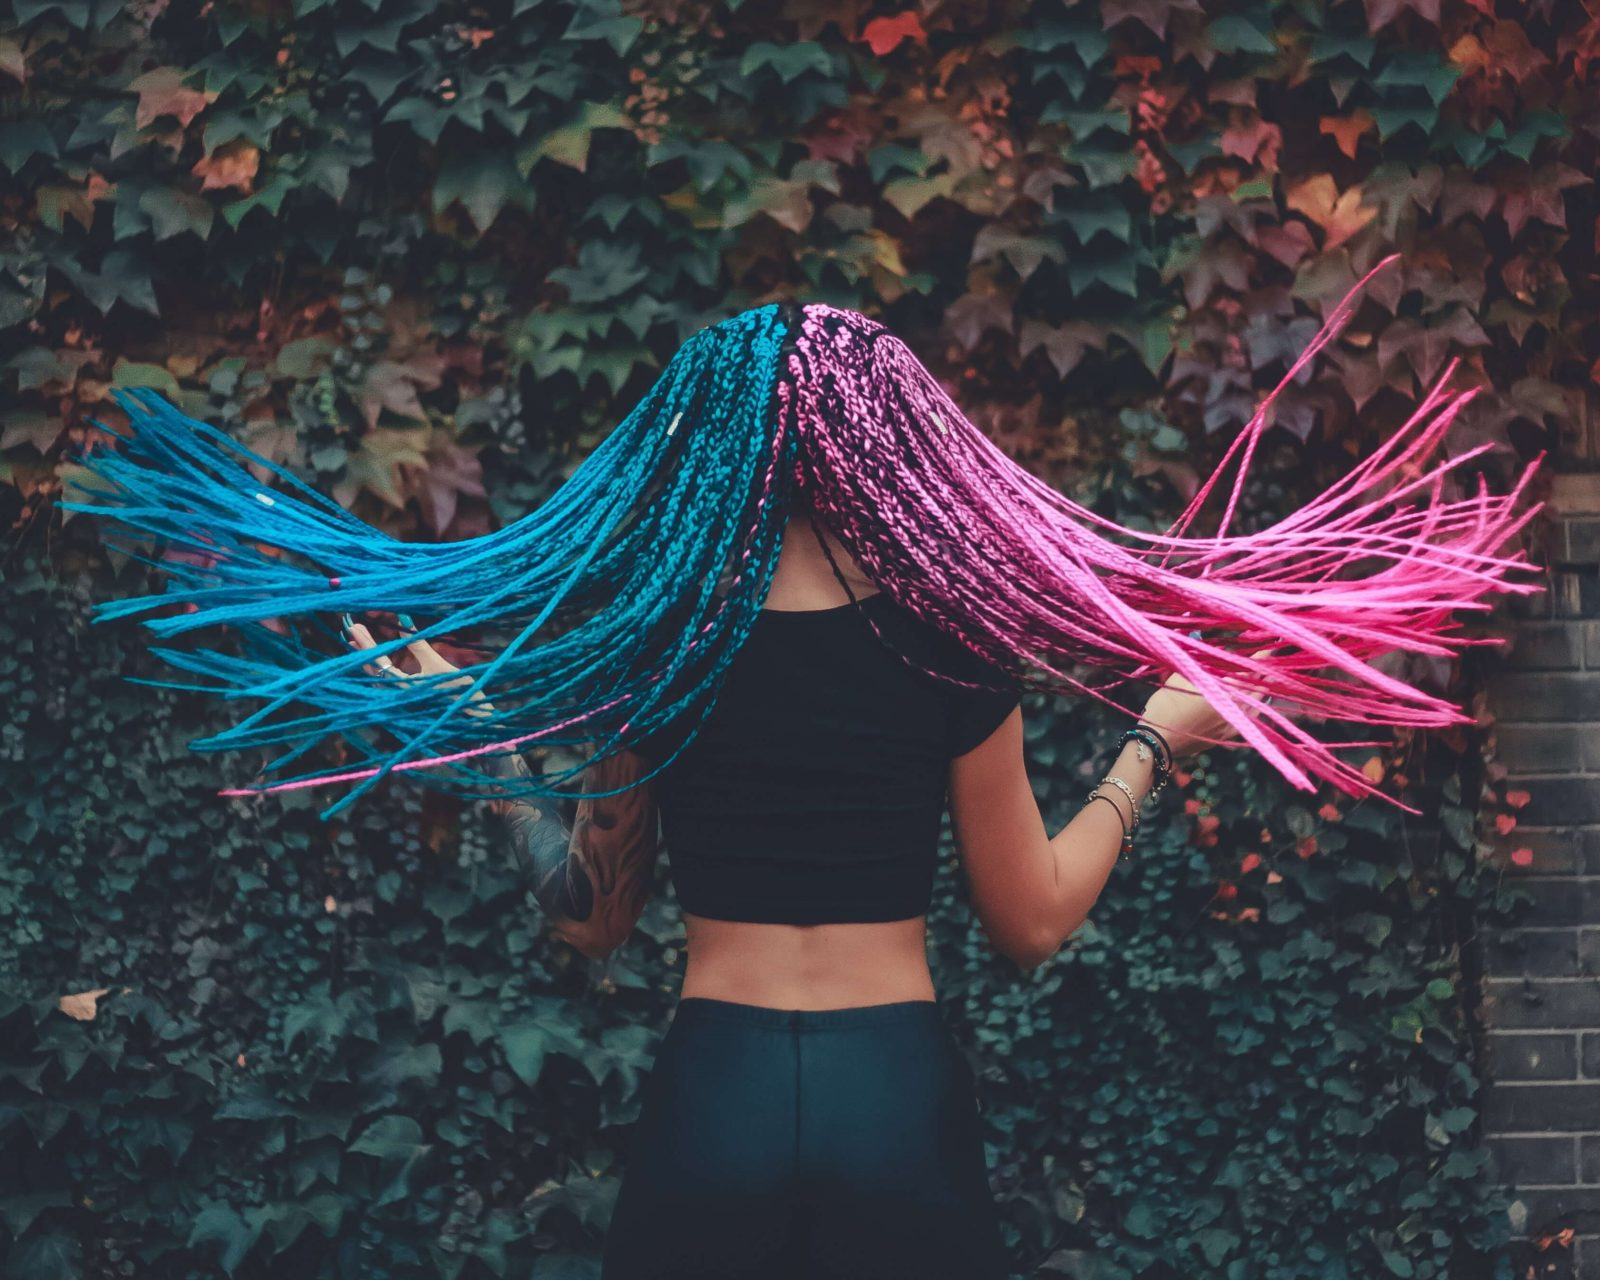 Photo d'une femme portant des tresses bicolores. (Nikola Topic, unsplash.com)